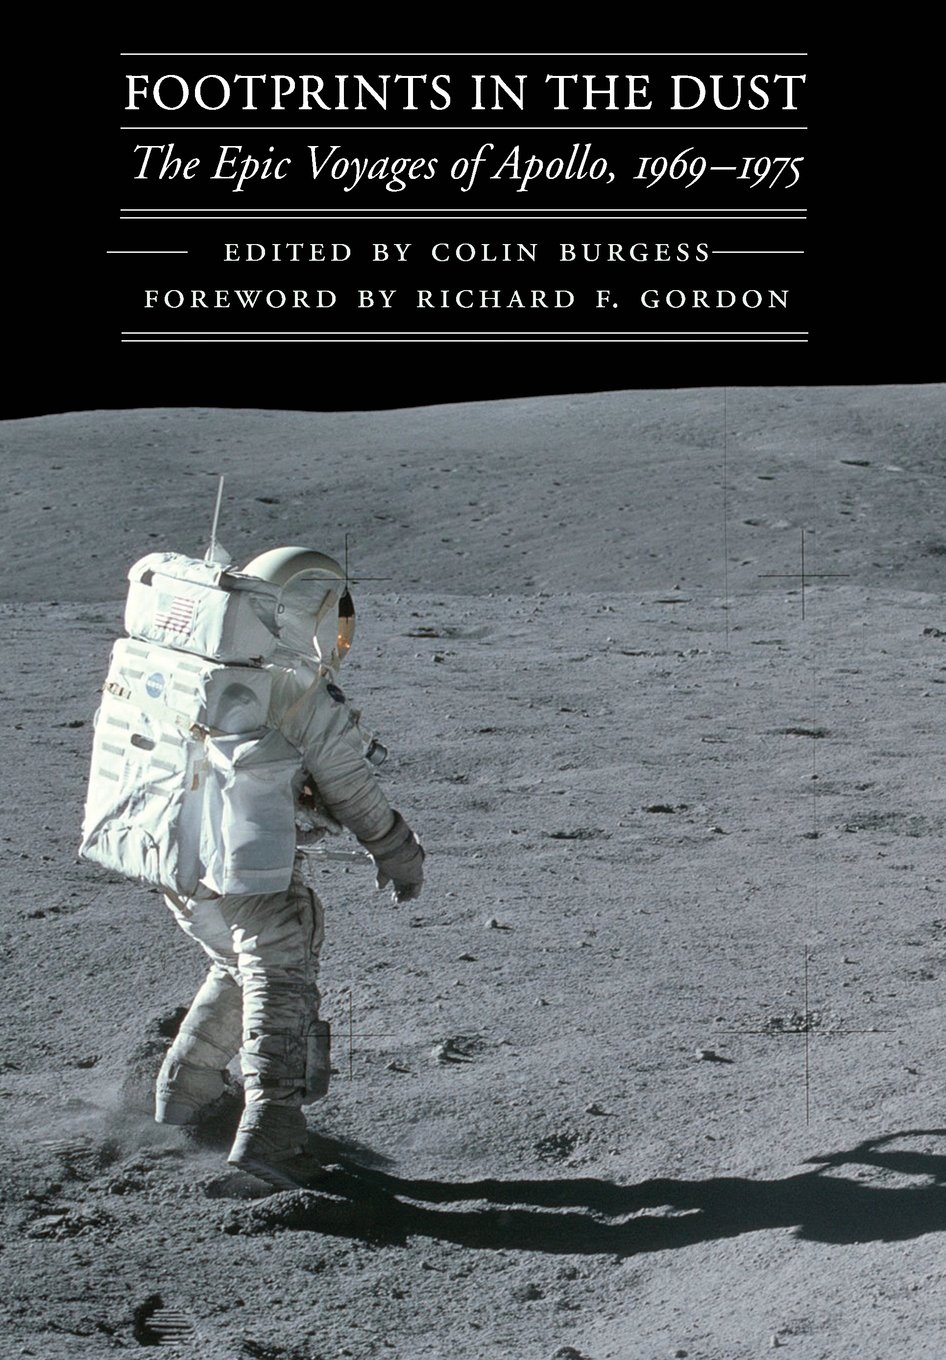 Download Footprints in the Dust: The Epic Voyages of Apollo, 1969-1975 (Outward Odyssey: A People's History of Spaceflight) PDF